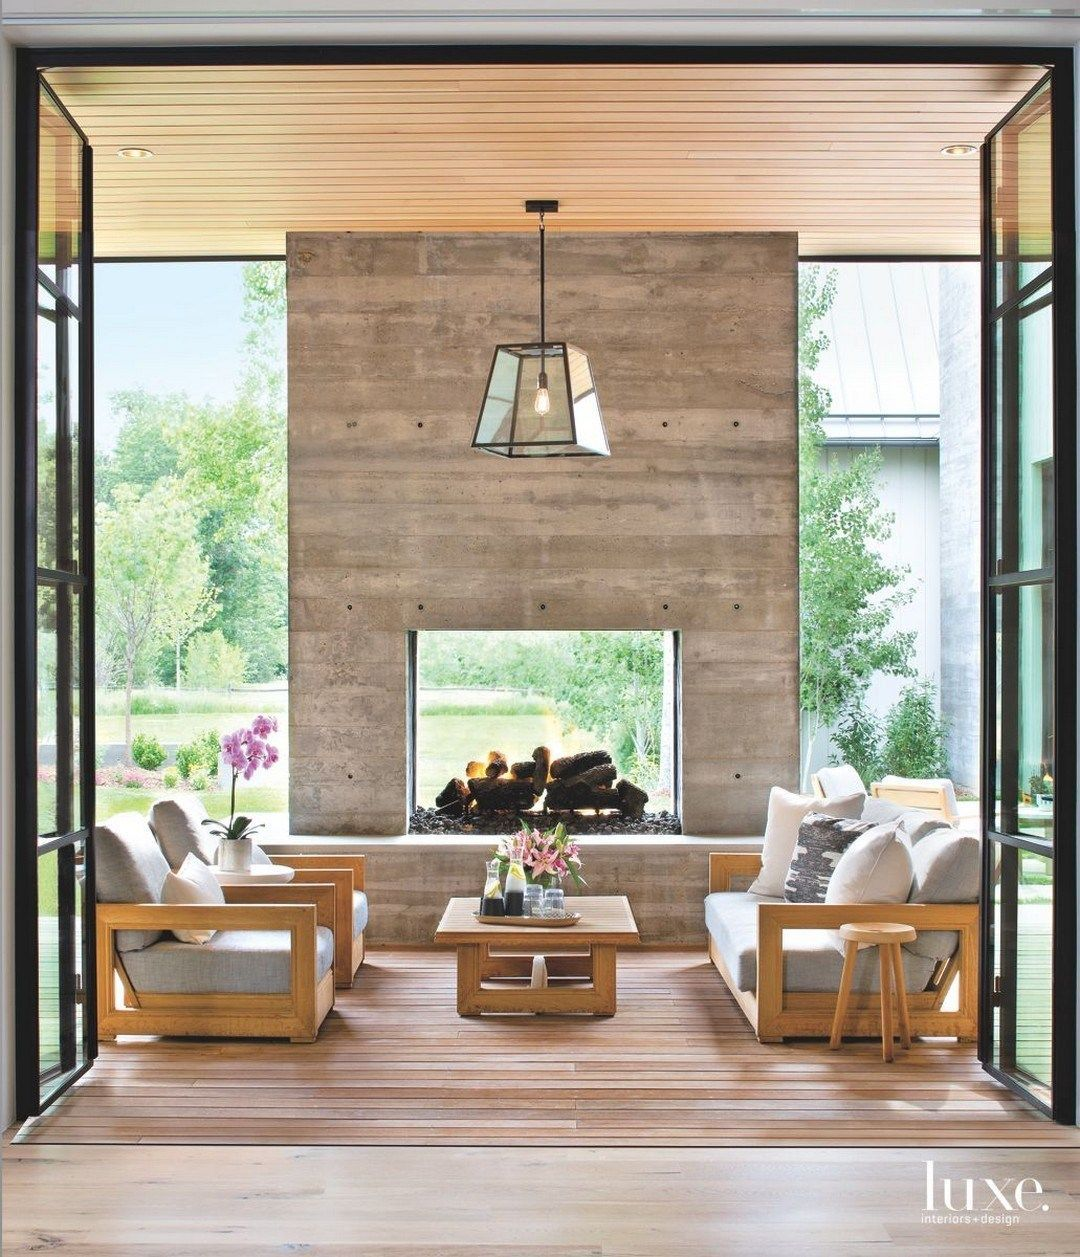 Awesome Outdoor Fireplace Design Ideas 9 In 2020 With Images Fireplace Design